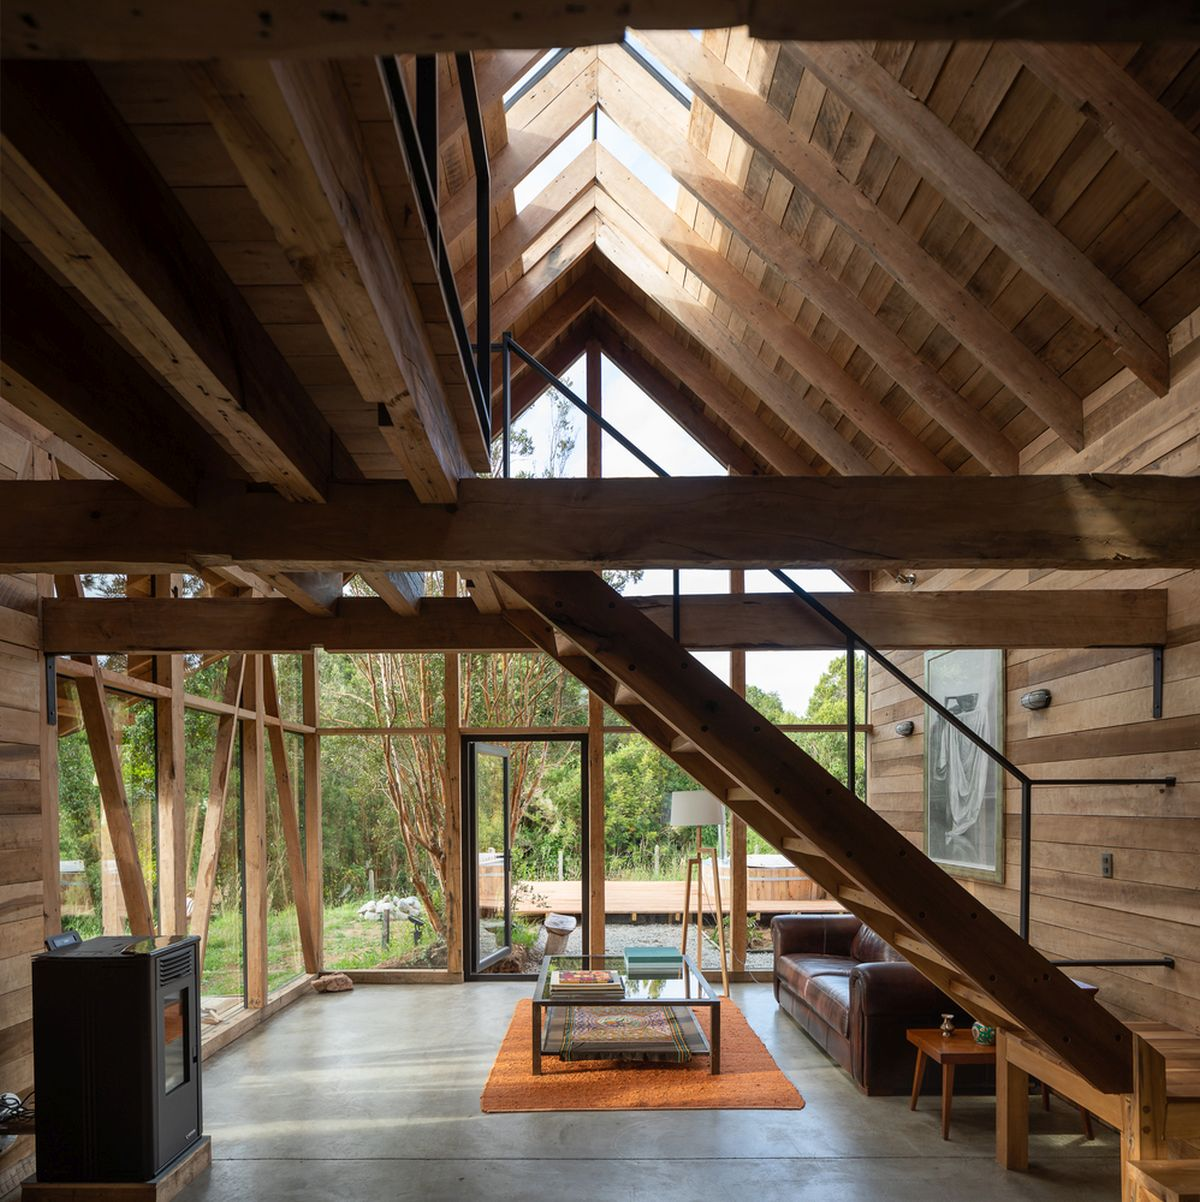 1567410253 489 modern lodge disguised as traditional using wooden shingles - Modern Lodge Disguised As Traditional Using Wooden Shingles